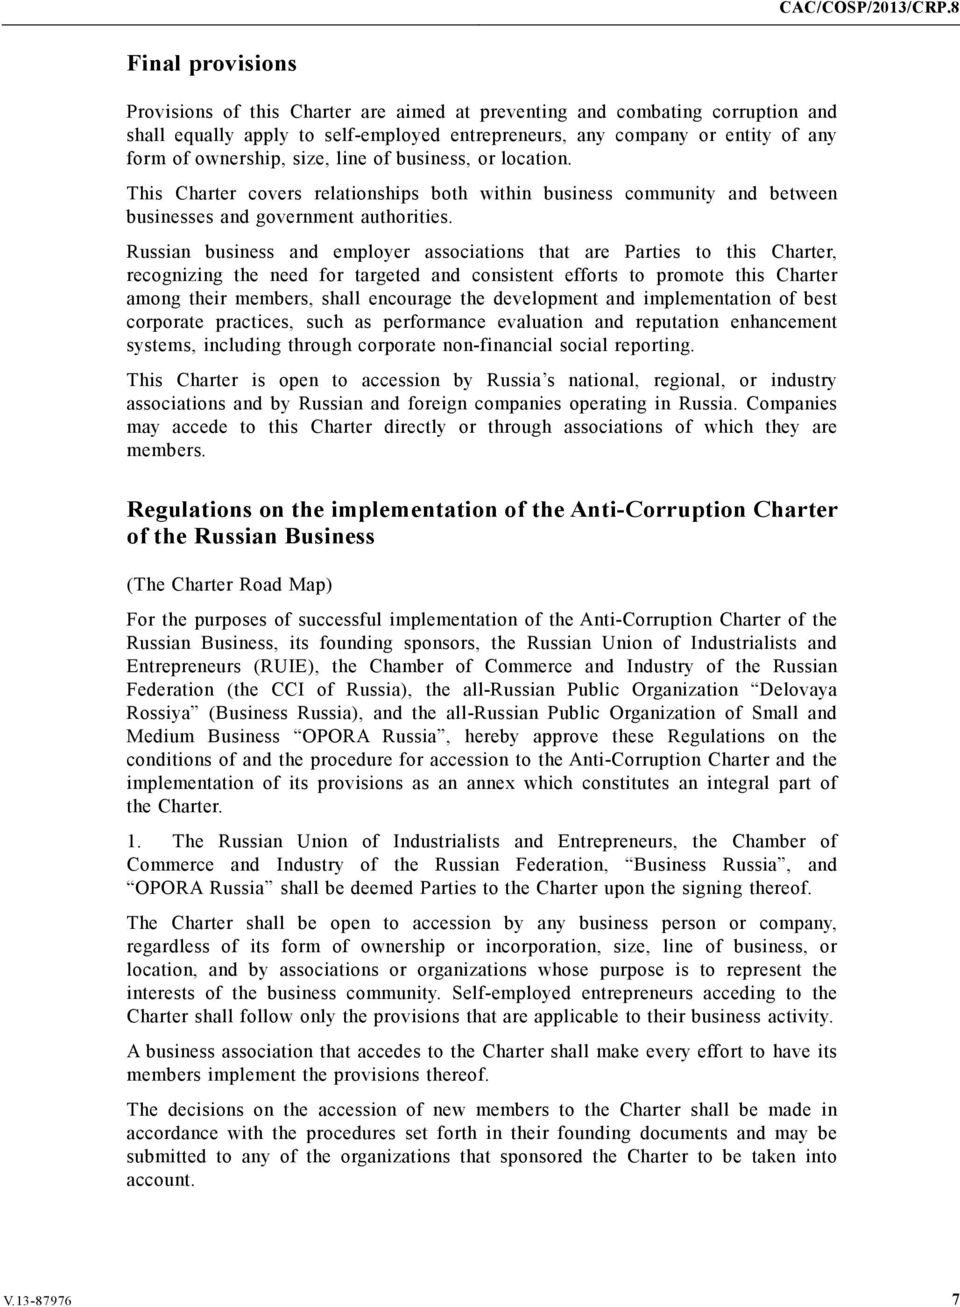 Russian business and employer associations that are Parties to this Charter, recognizing the need for targeted and consistent efforts to promote this Charter among their members, shall encourage the